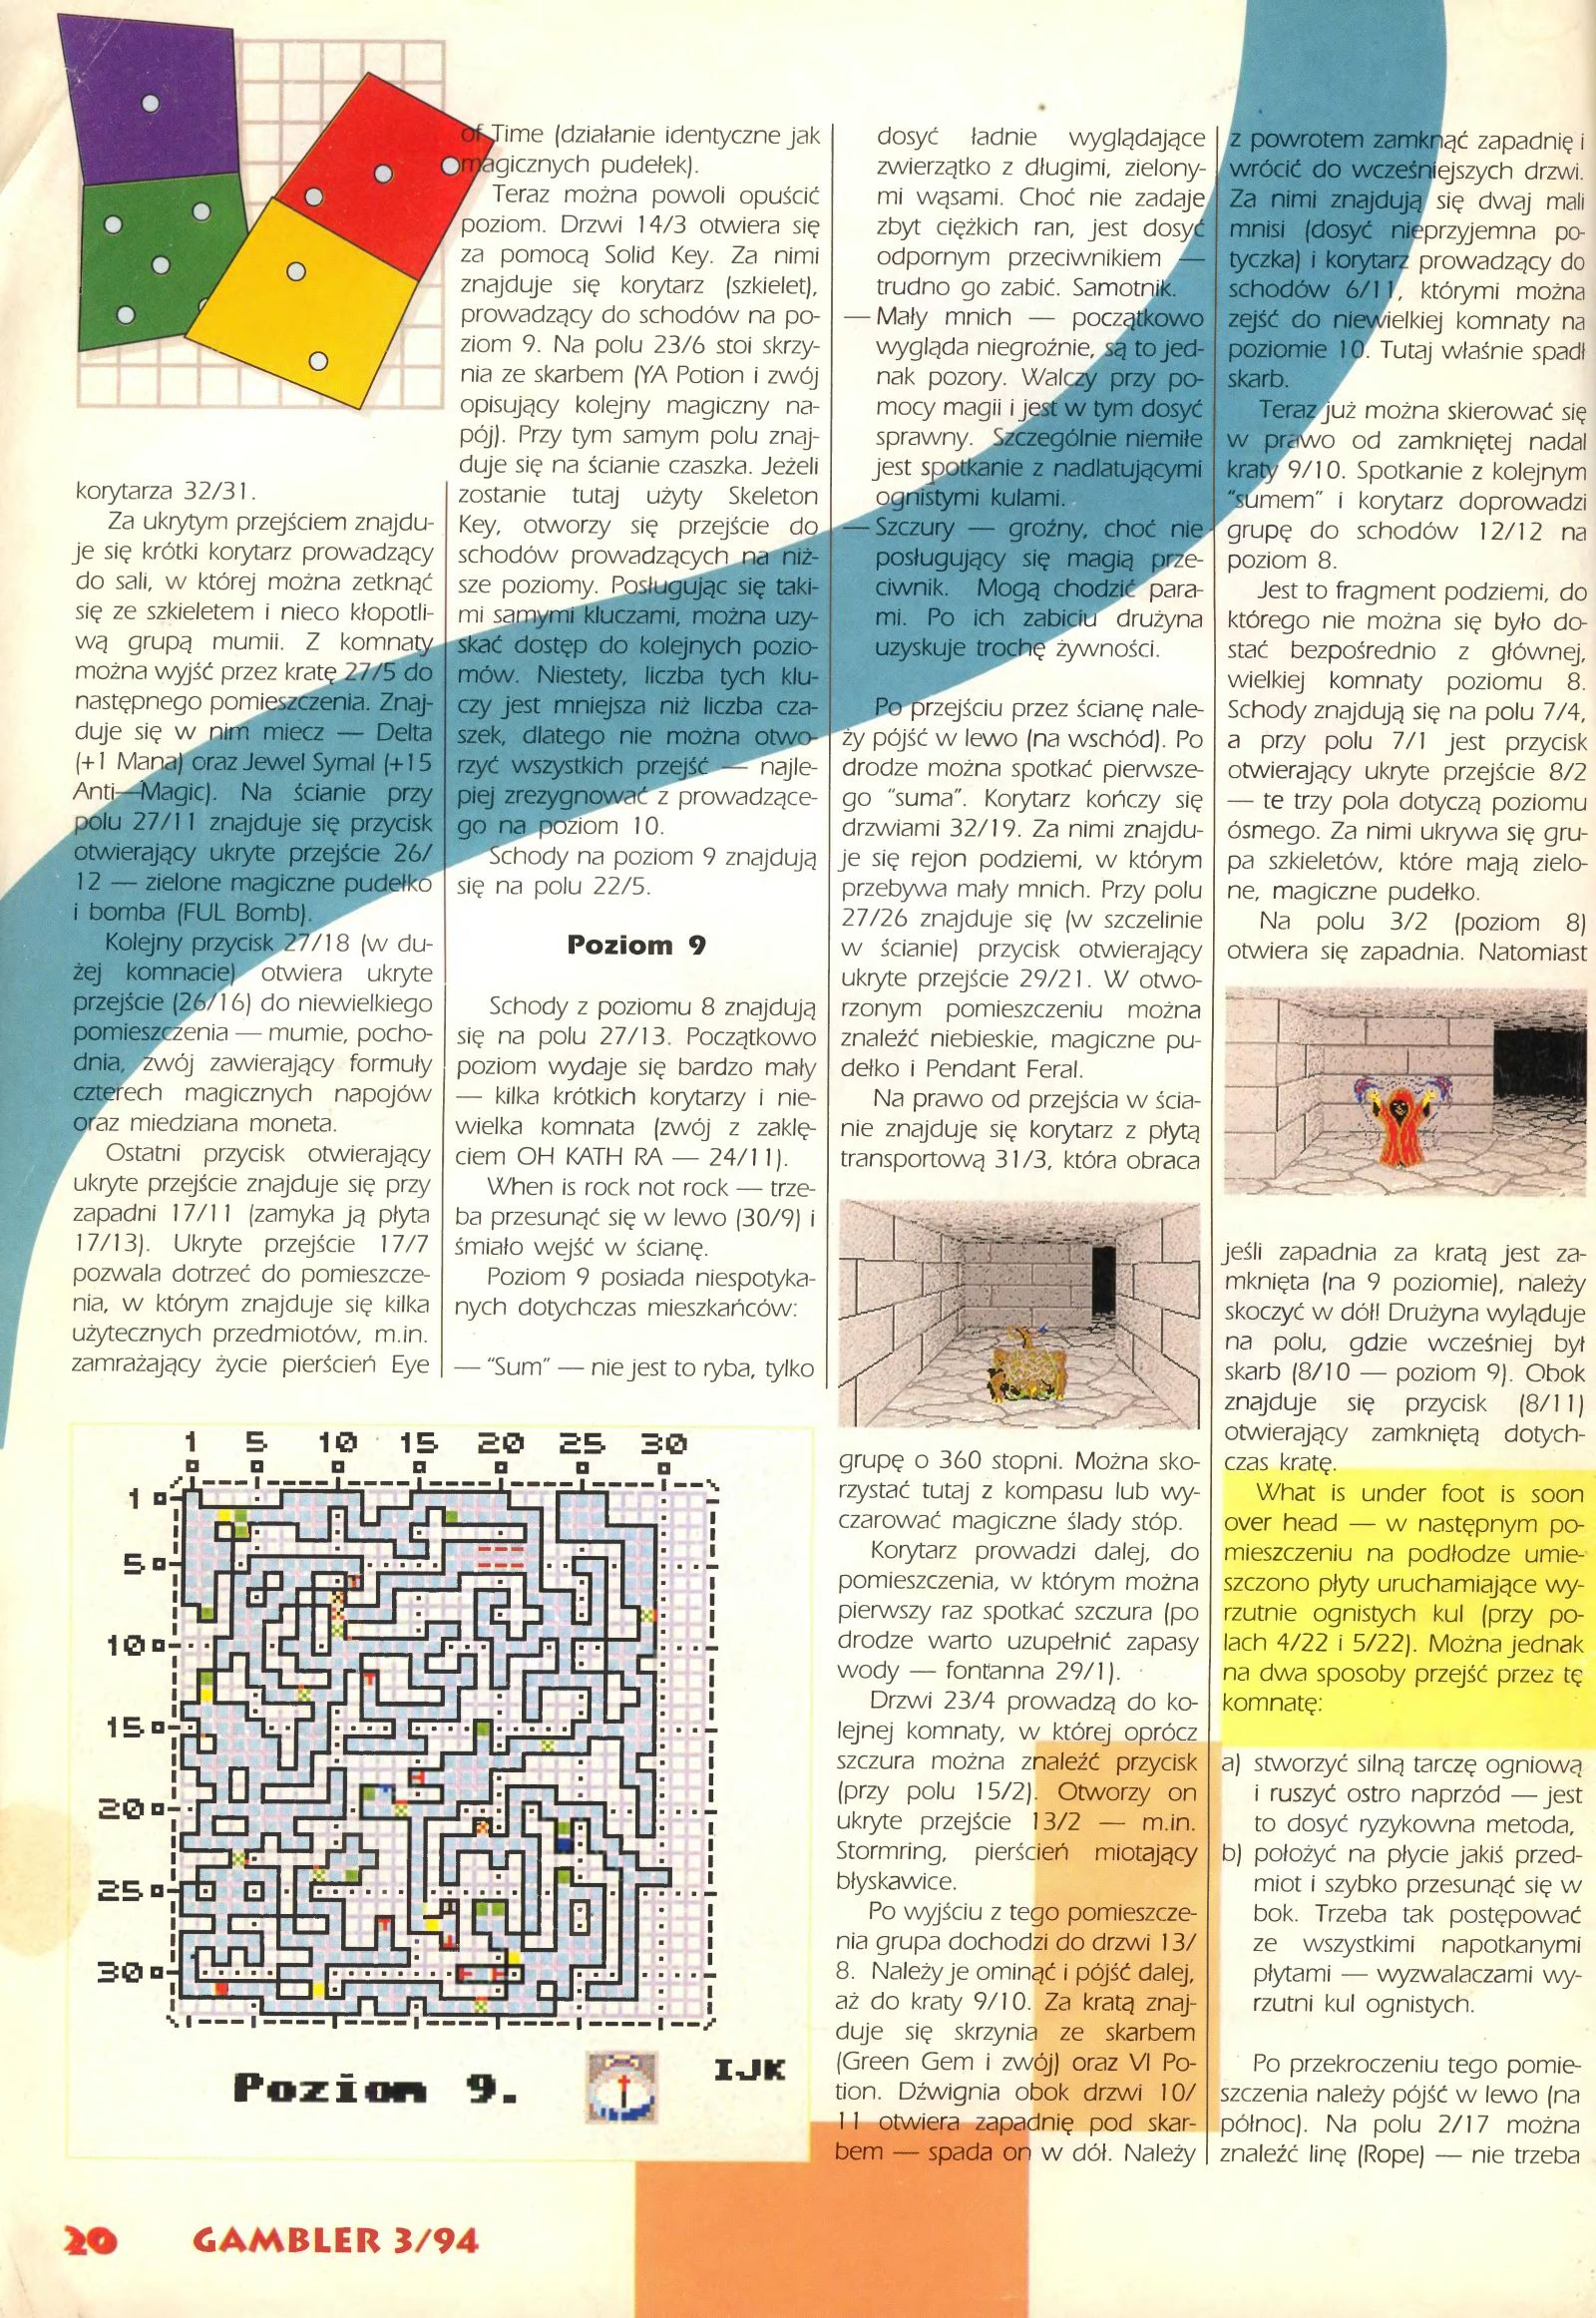 Dungeon Master Guide published in Polish magazine 'Gambler', March 1994, Page 20